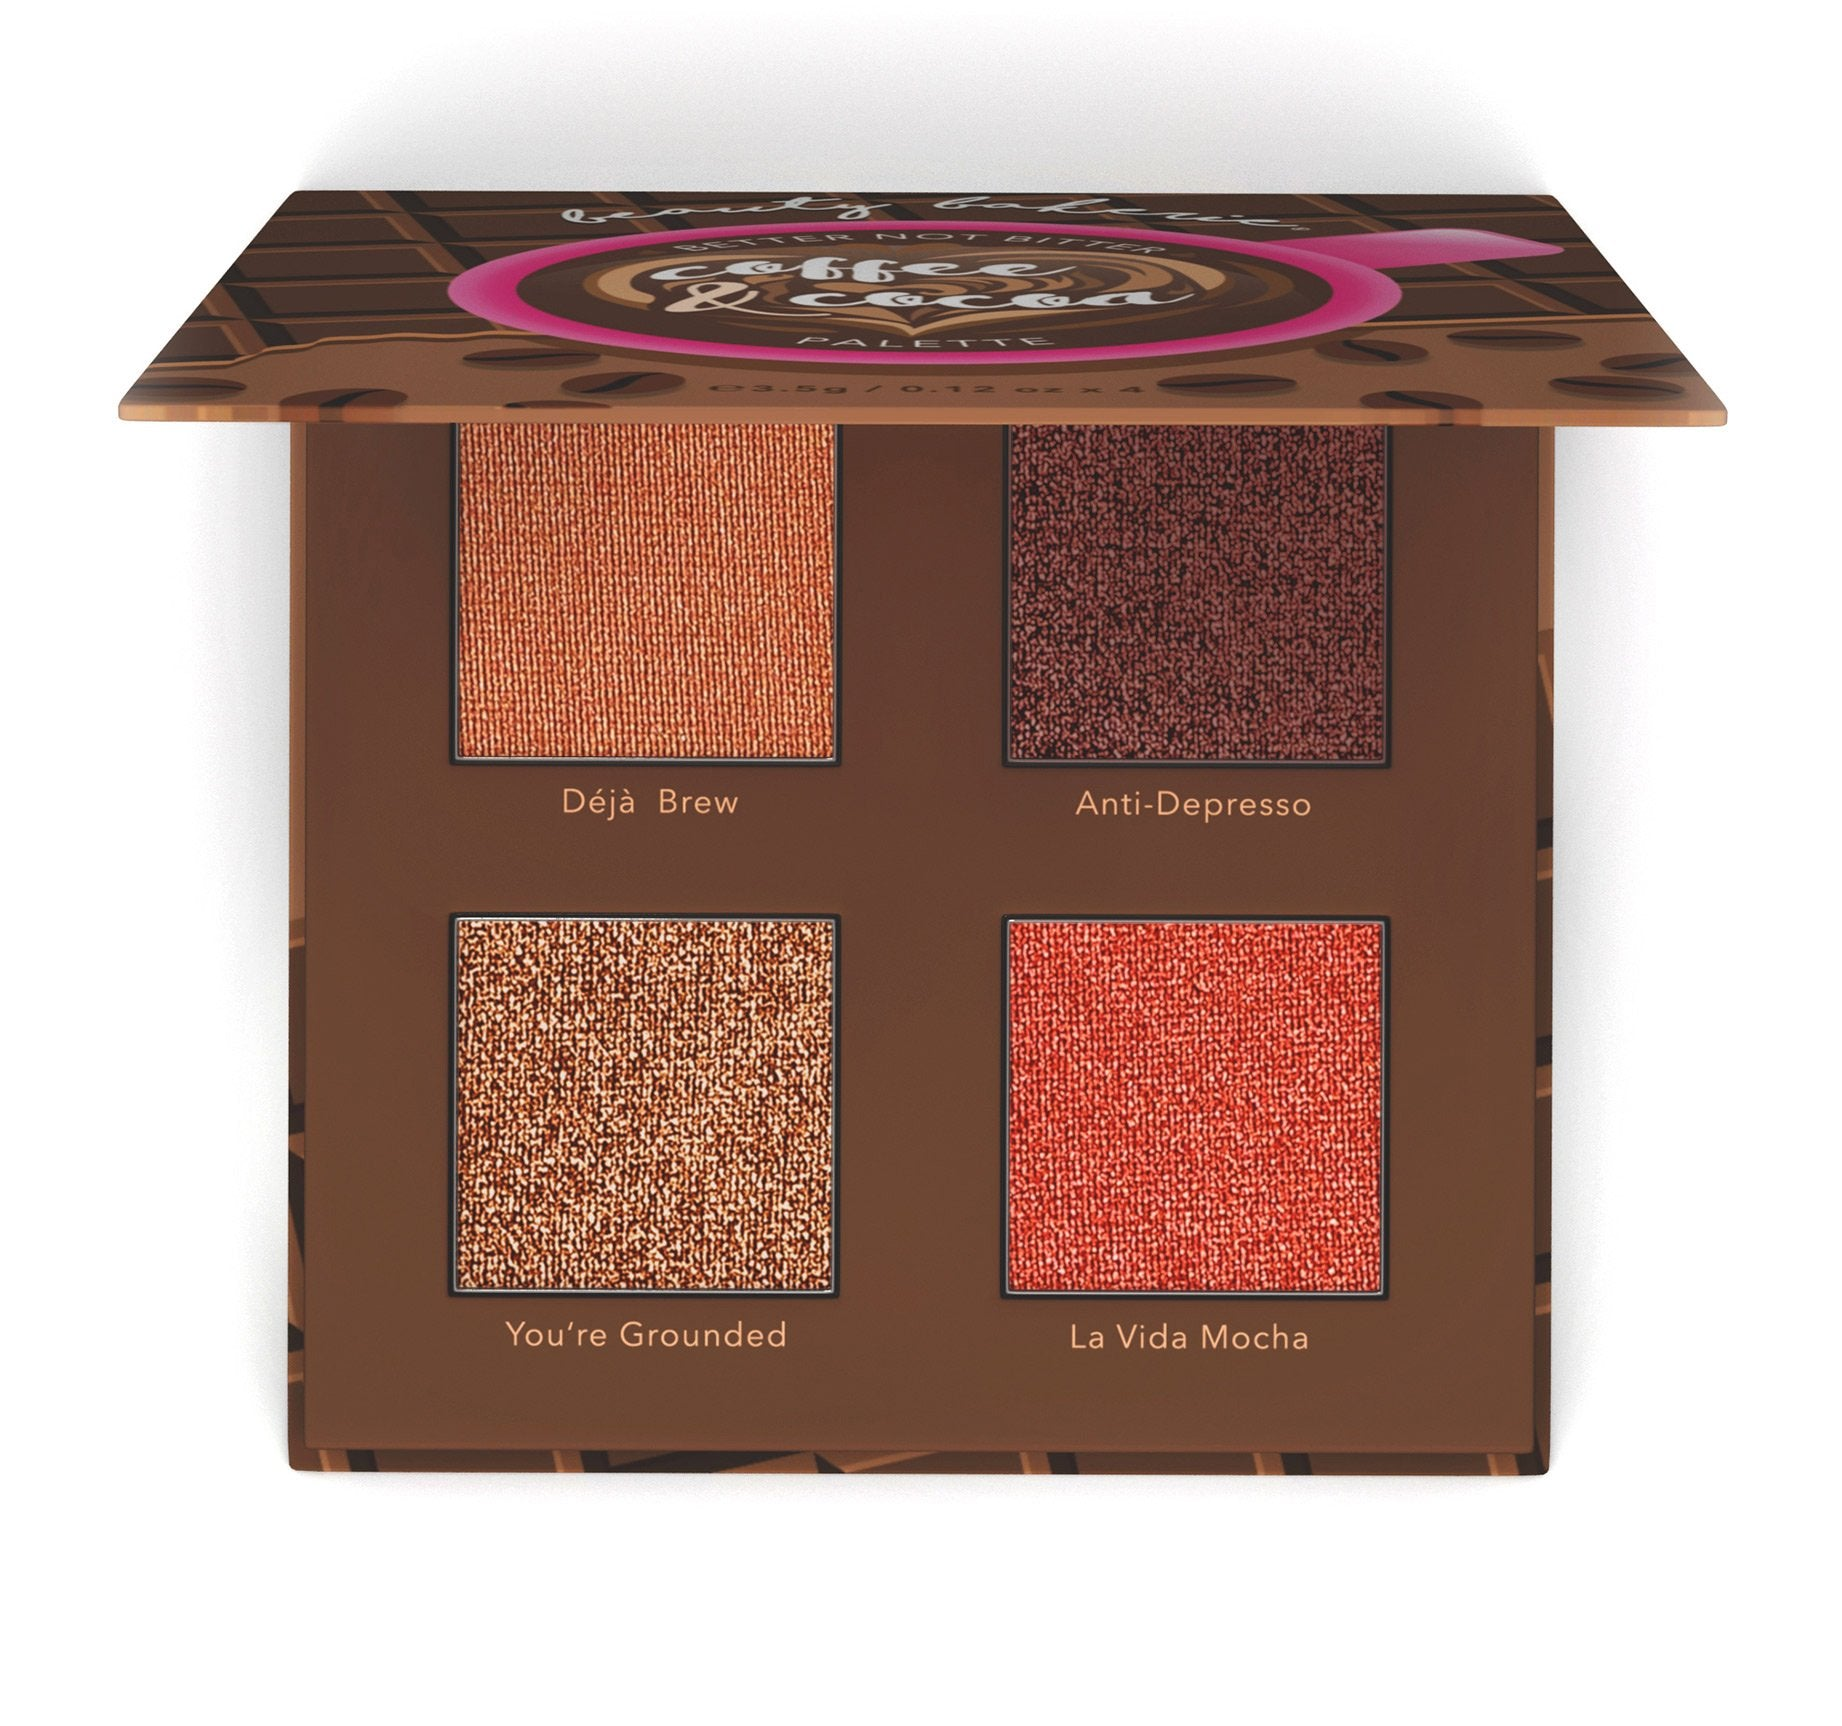 COFFEE & COCOA BRONZER PALETTE, view larger image